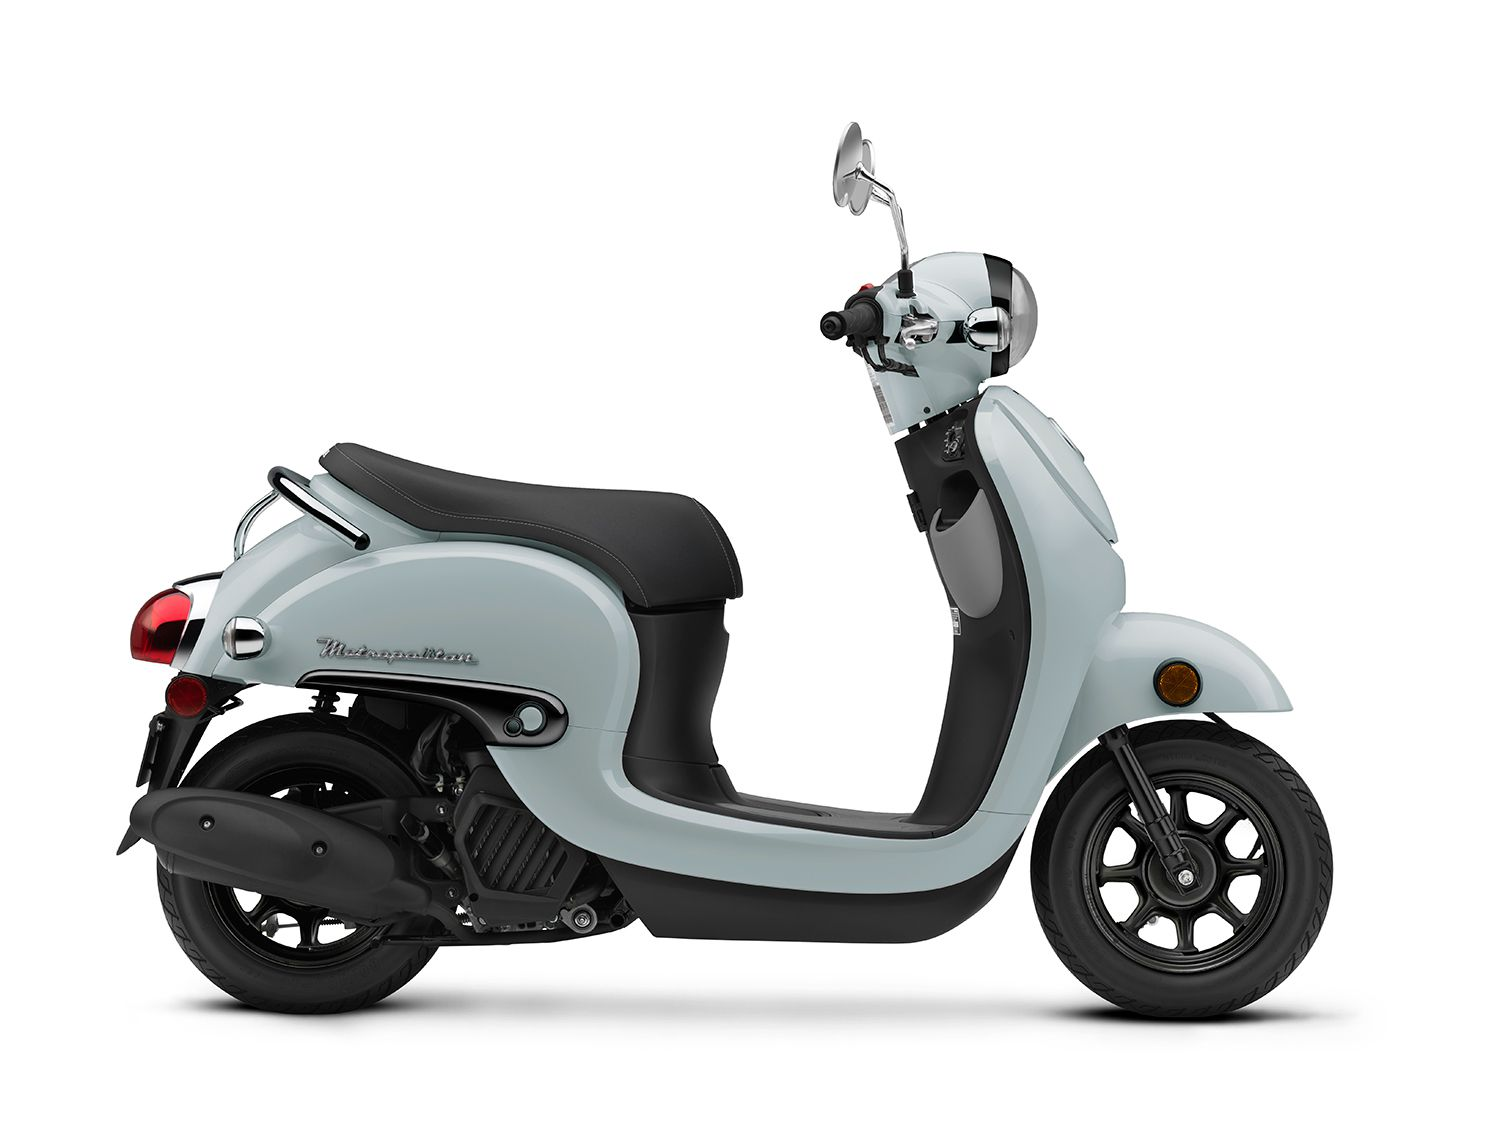 The Metropolitan scooter comes in Coastal Blue (shown) and Pearl Soft Beige.